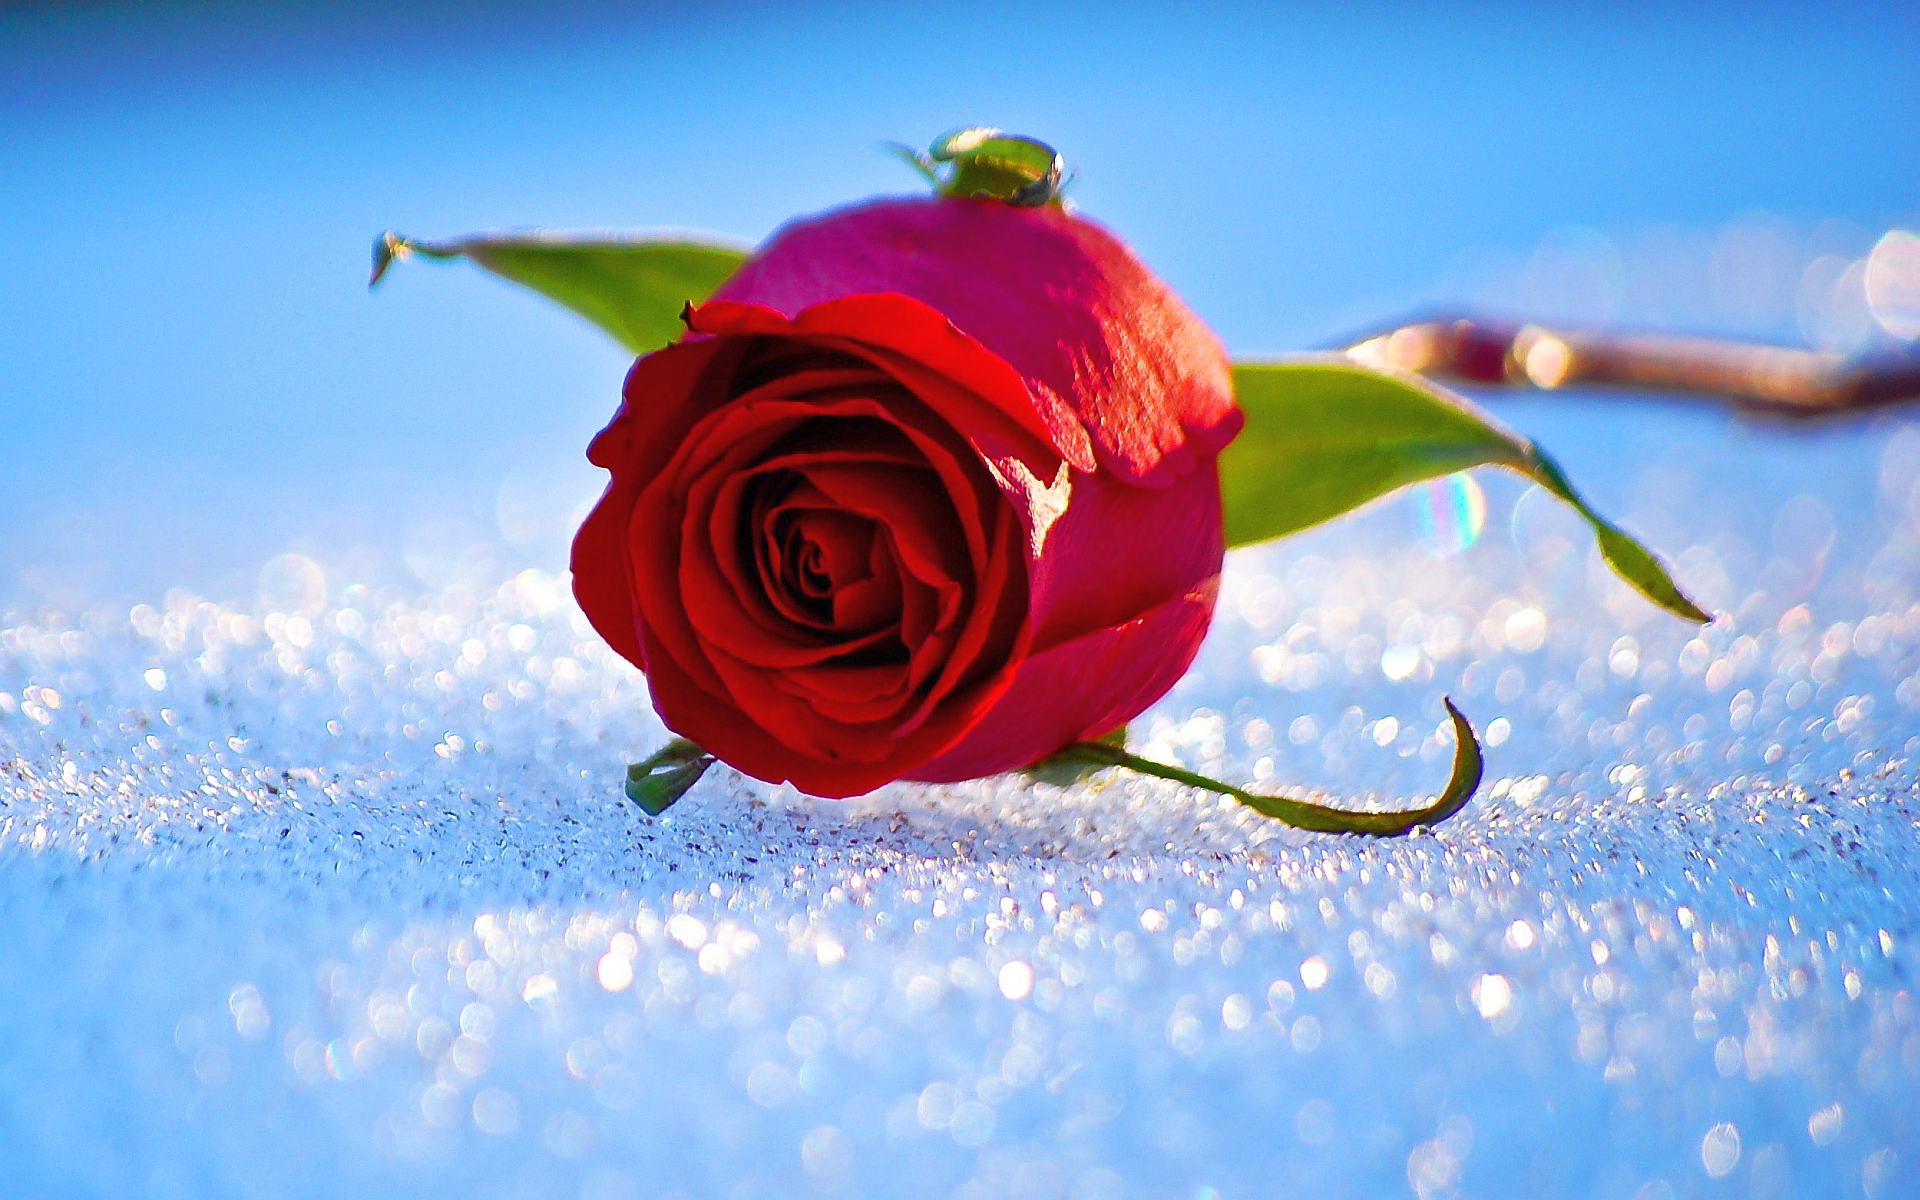 Snow wallpaper rose hd desktop wallpapers 4k hd - Rose in snow wallpaper ...